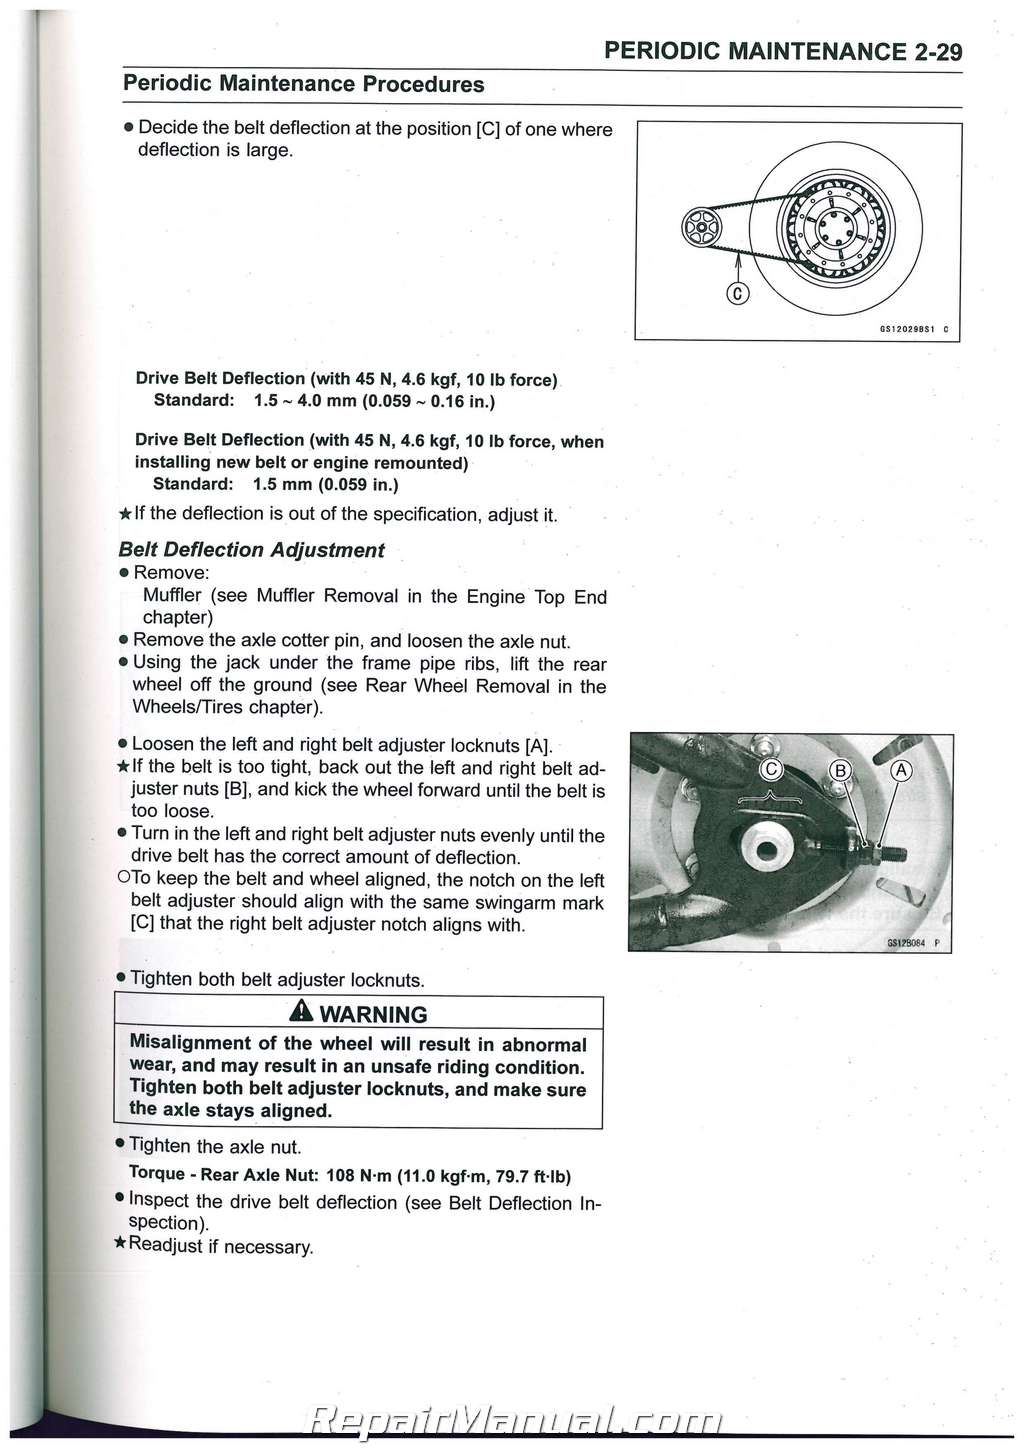 Can am spyder rt shop manual ebook array 100 2010 kawasaki z1000 repair manual used kawasaki bikes for rh rencontrefemmesseule space fandeluxe Image collections